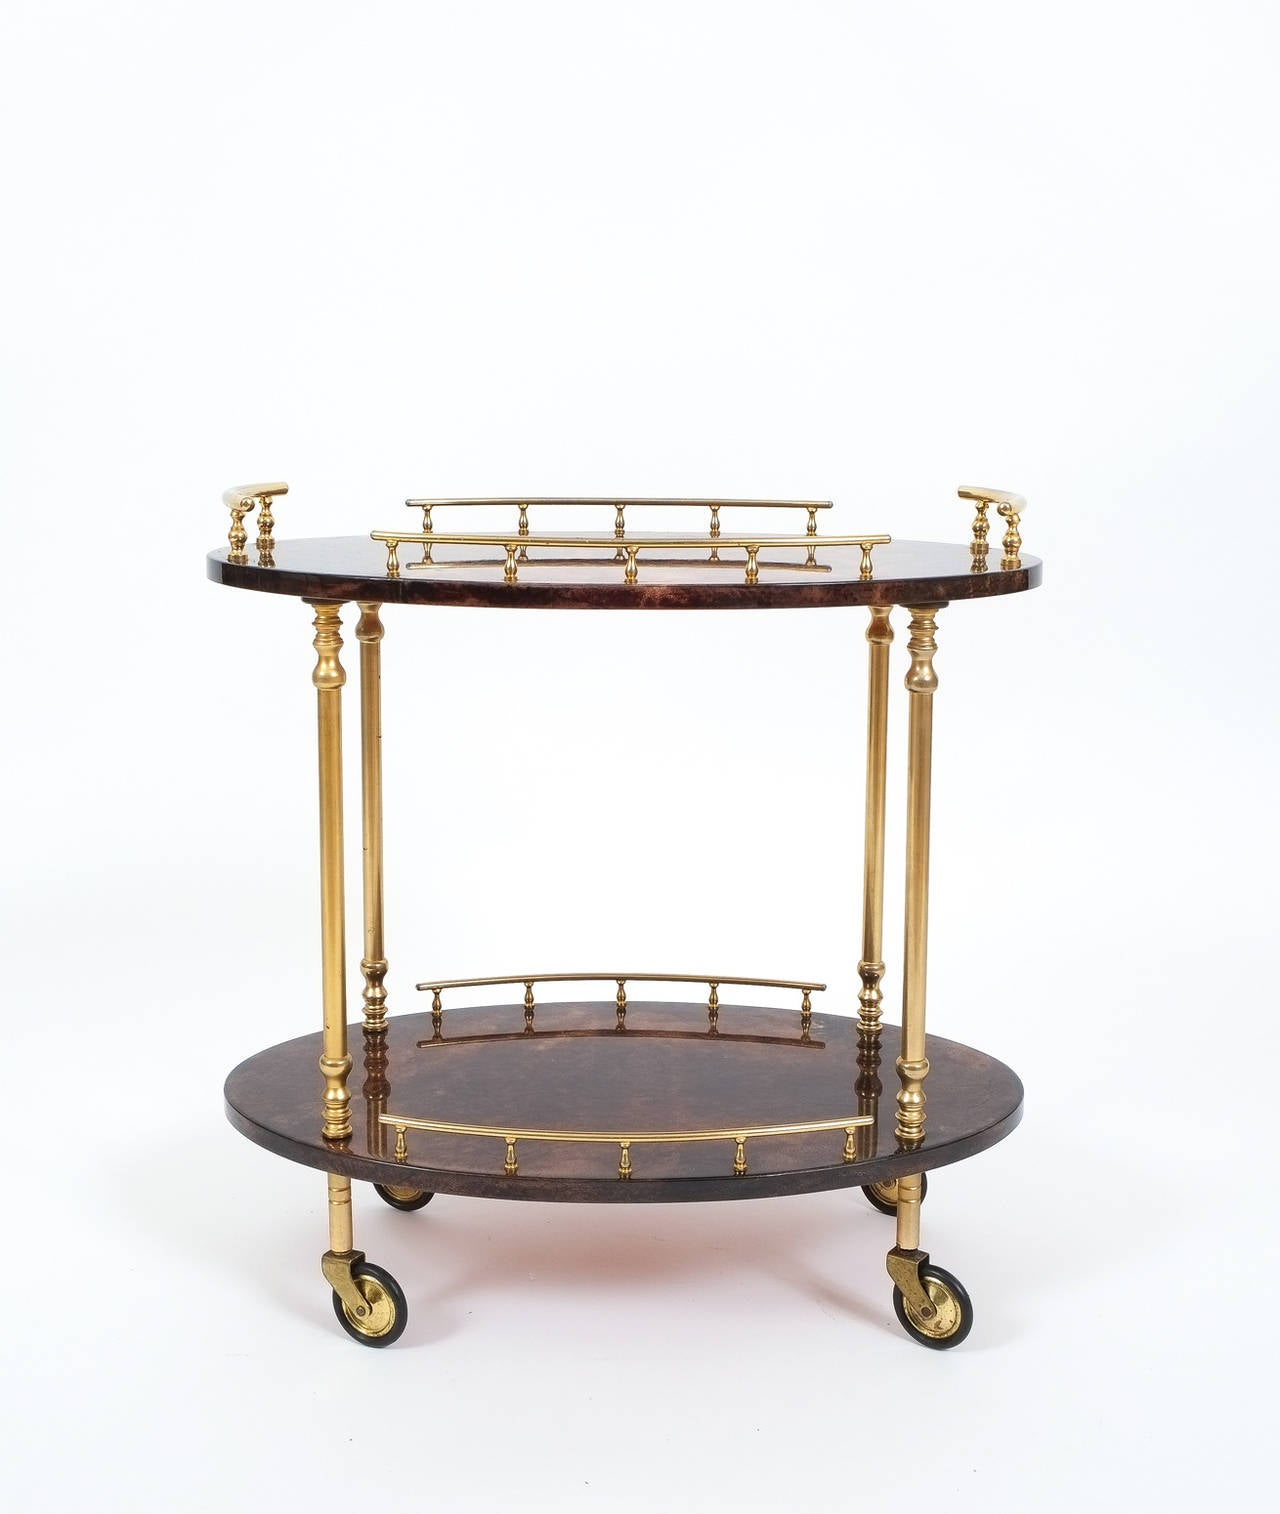 aldo tura petite bar cart or side table at 1stdibs On petite table bar